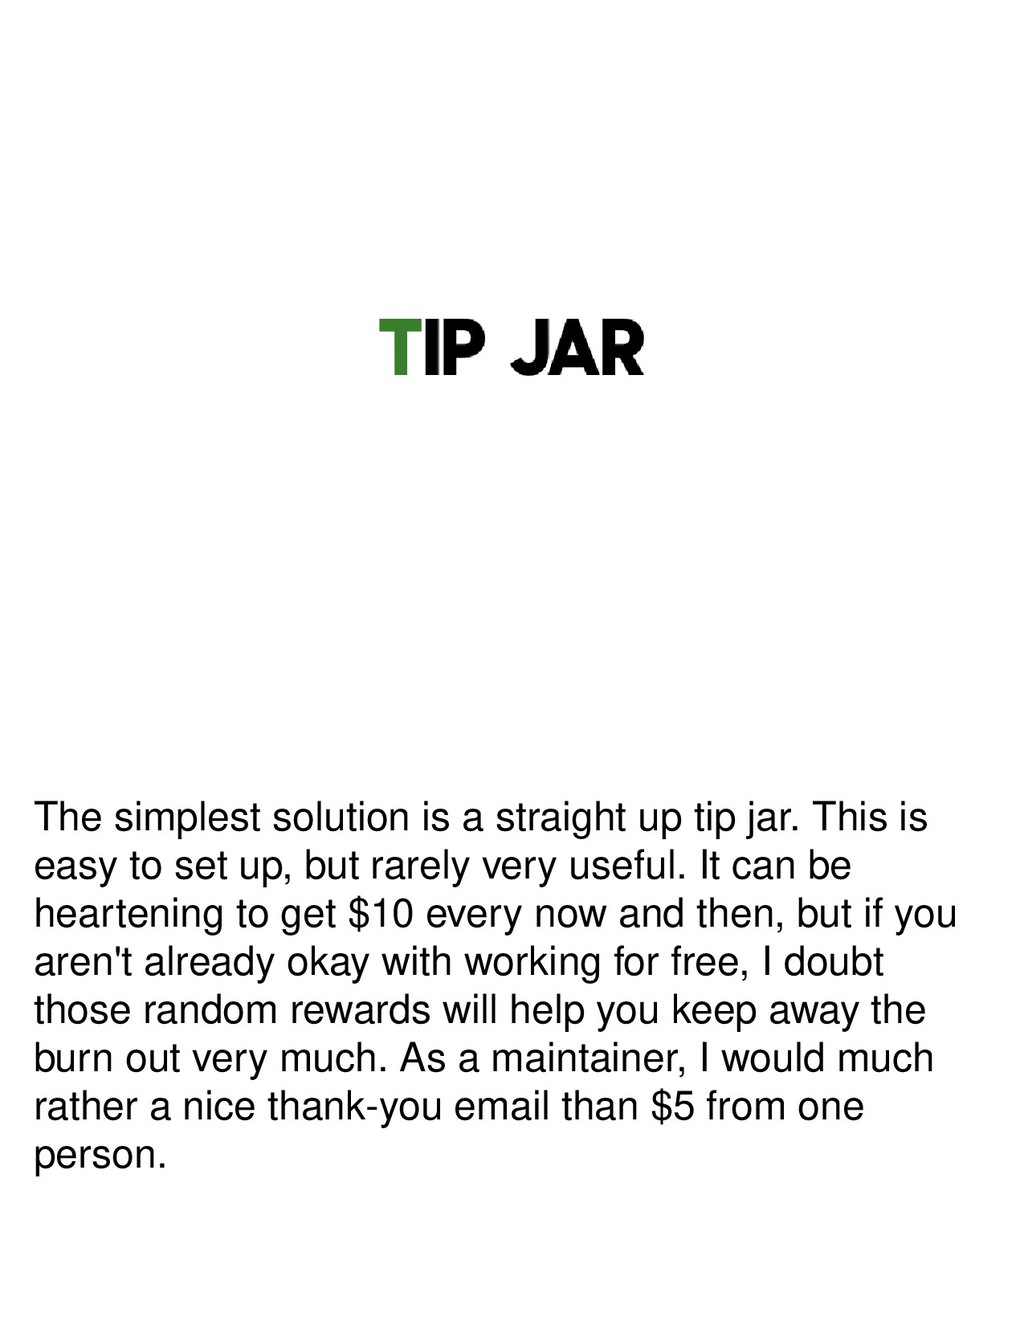 The simplest solution is a straight up tip jar....